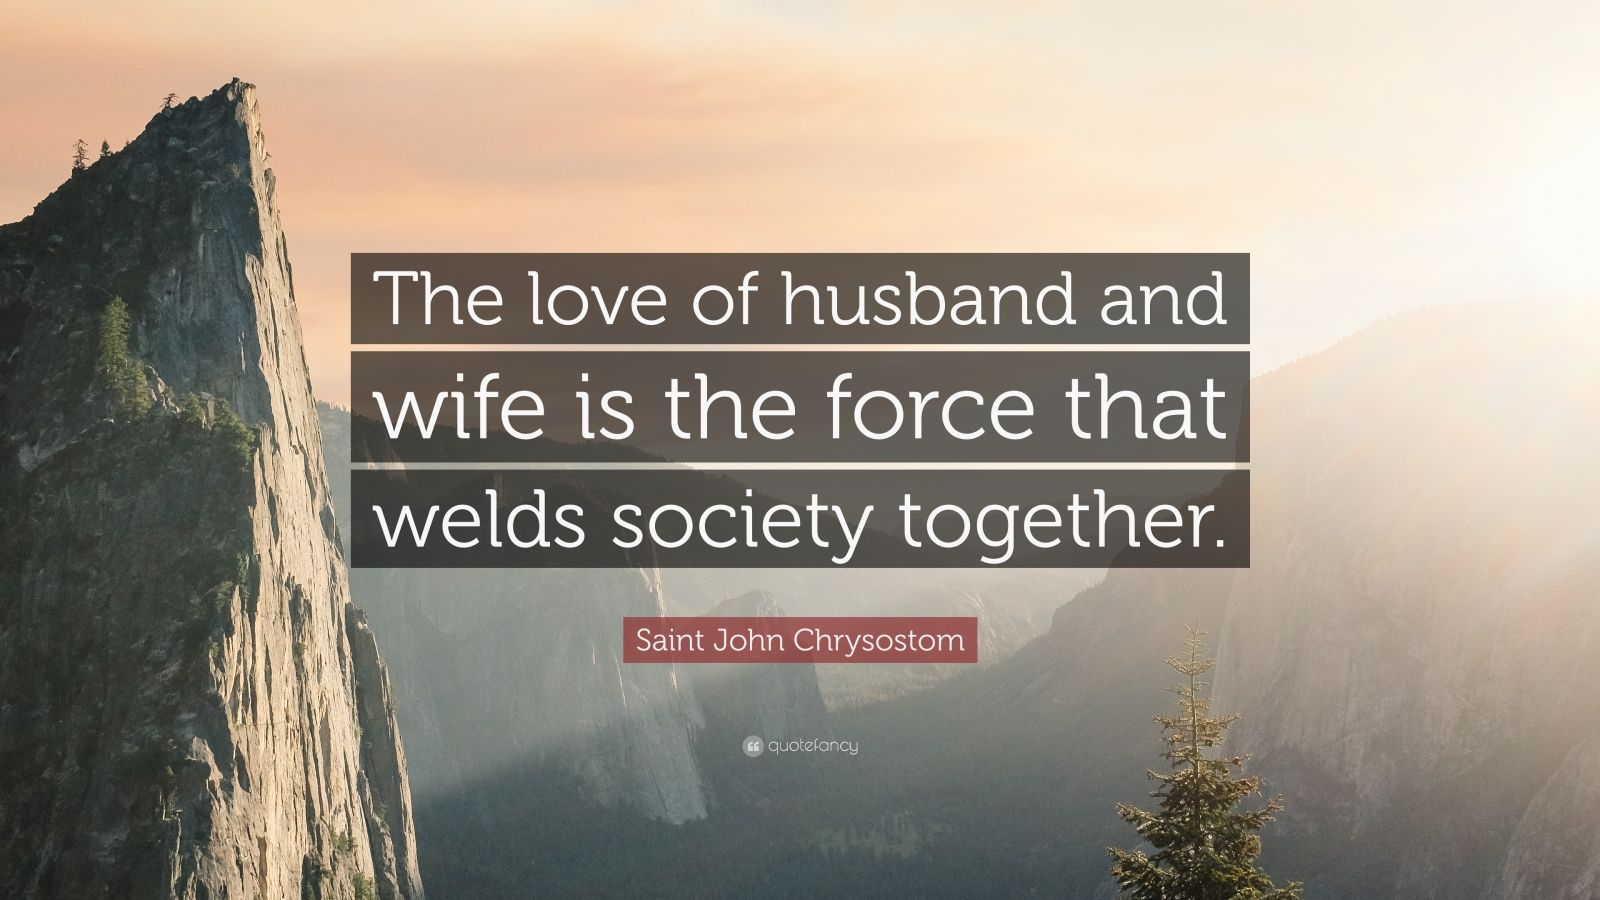 Love Wallpaper For Husband And Wife : Saint John chrysostom Quote: ?The love of husband and wife is the force that welds society ...